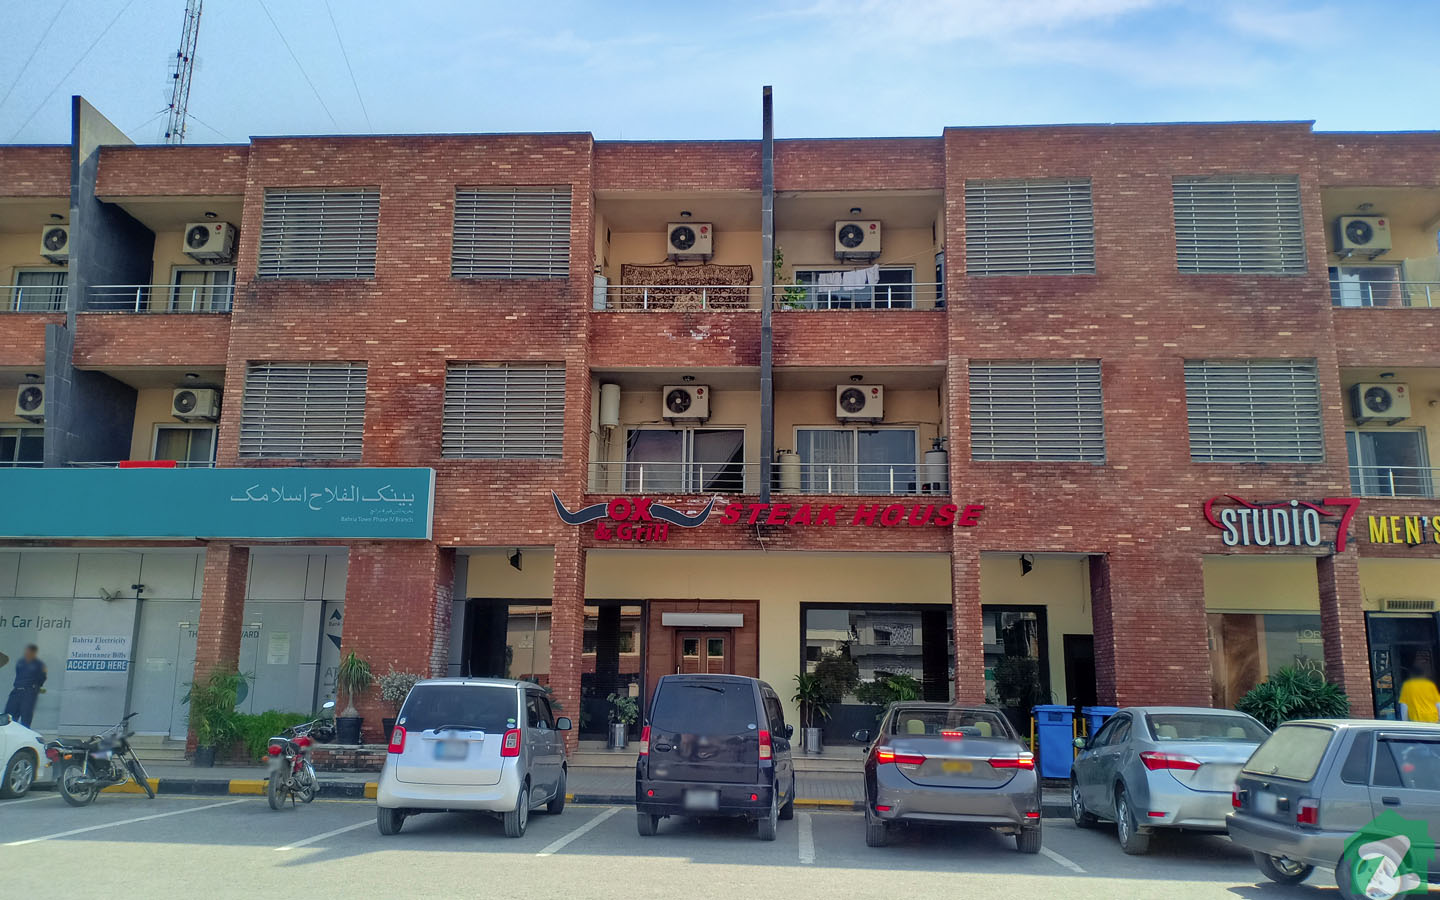 Ox & Grill Continental Restaurant located near Bahria Town, Phase 6